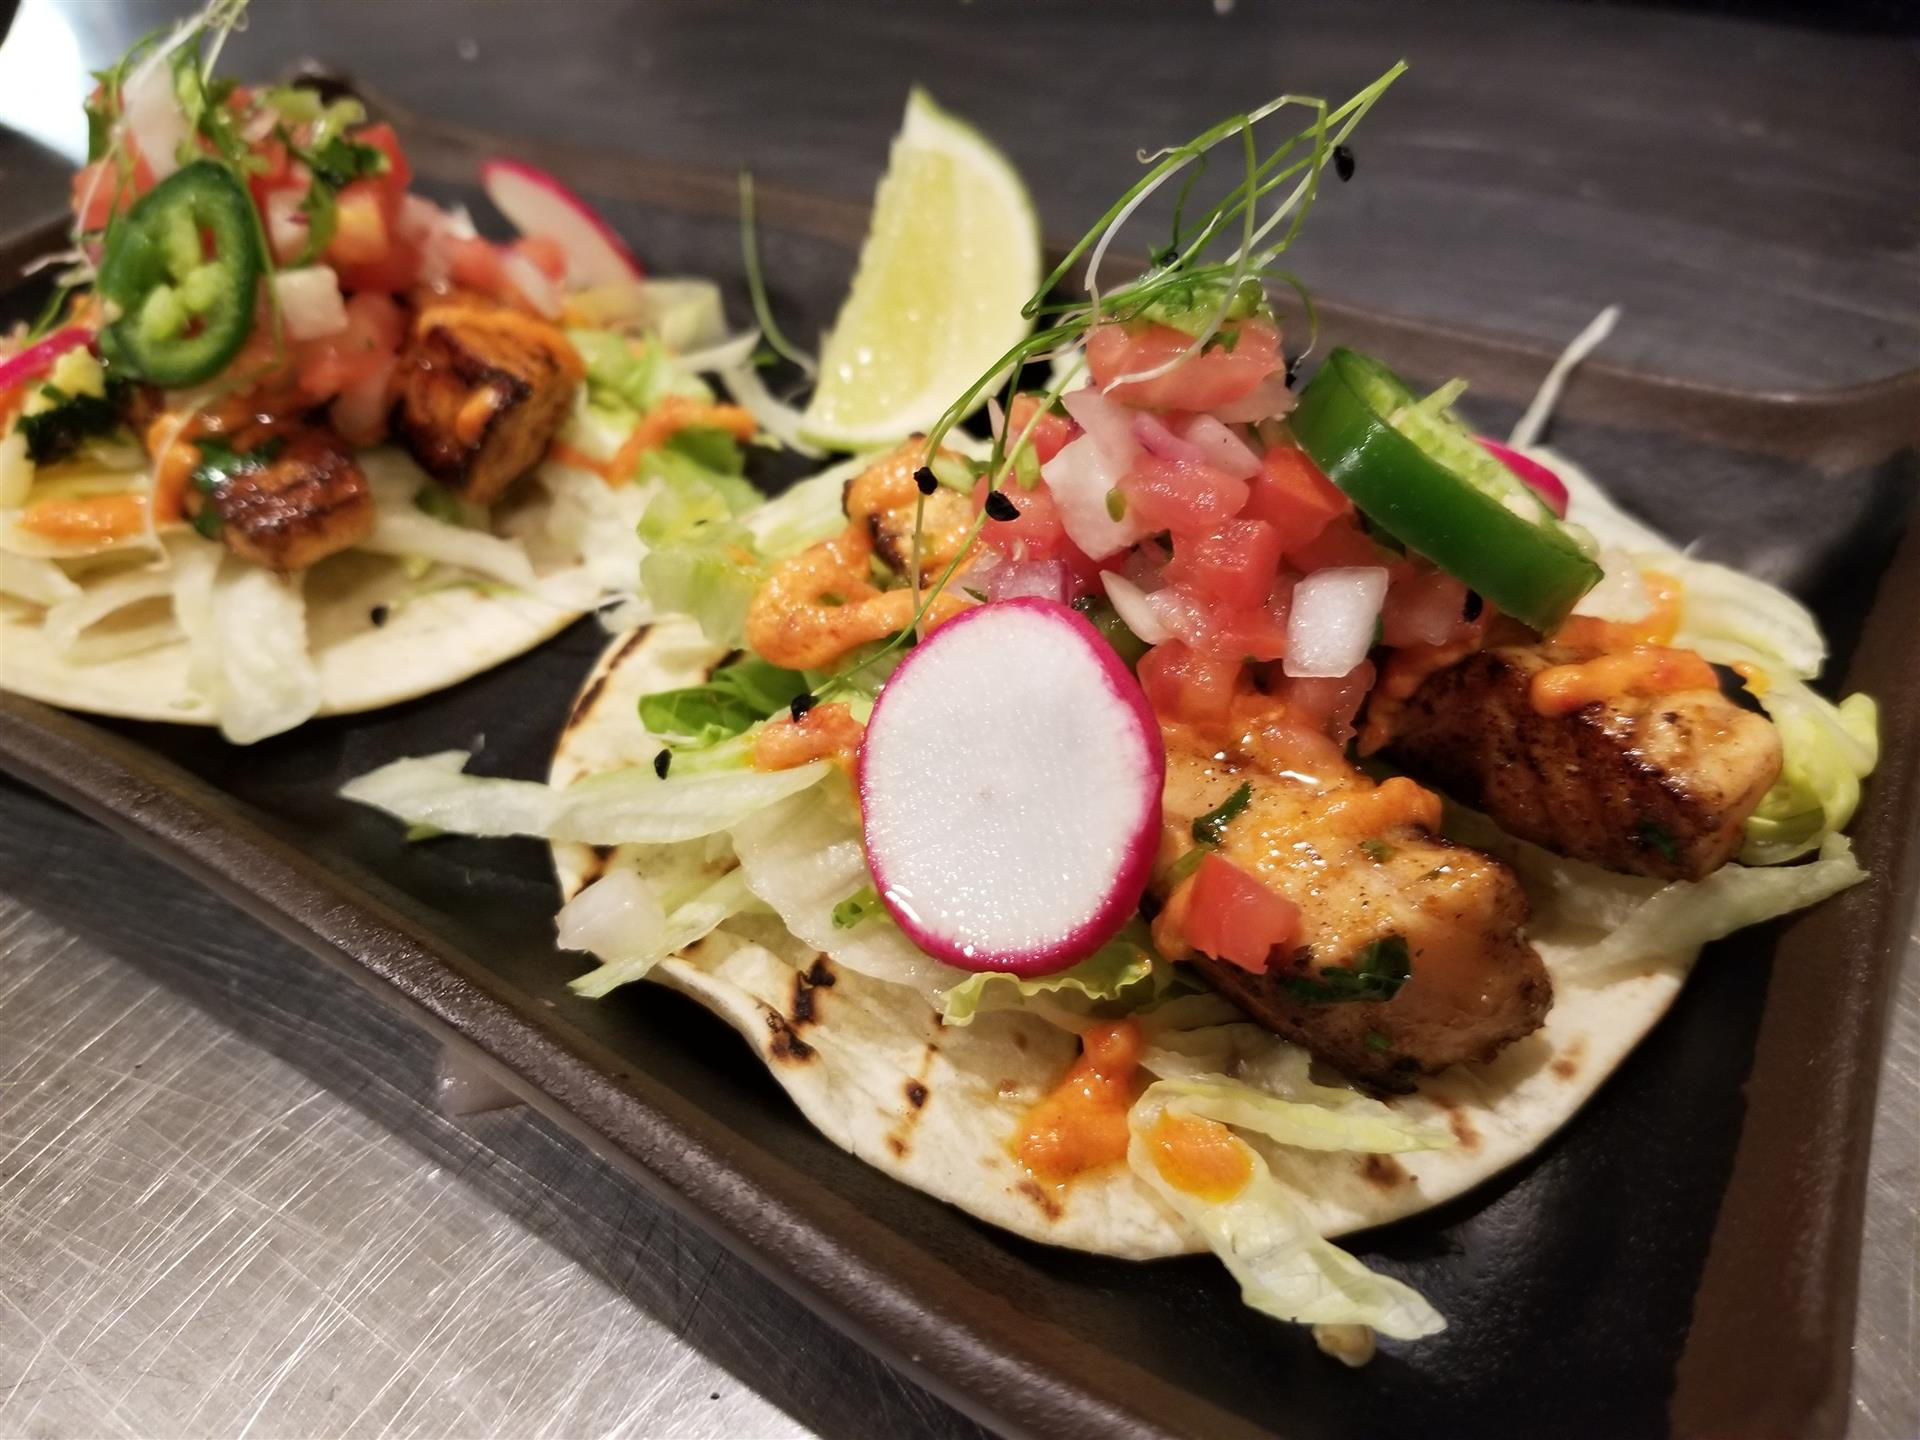 Two chicken tacos with radish, jalapeno and salsa on flour tortillas